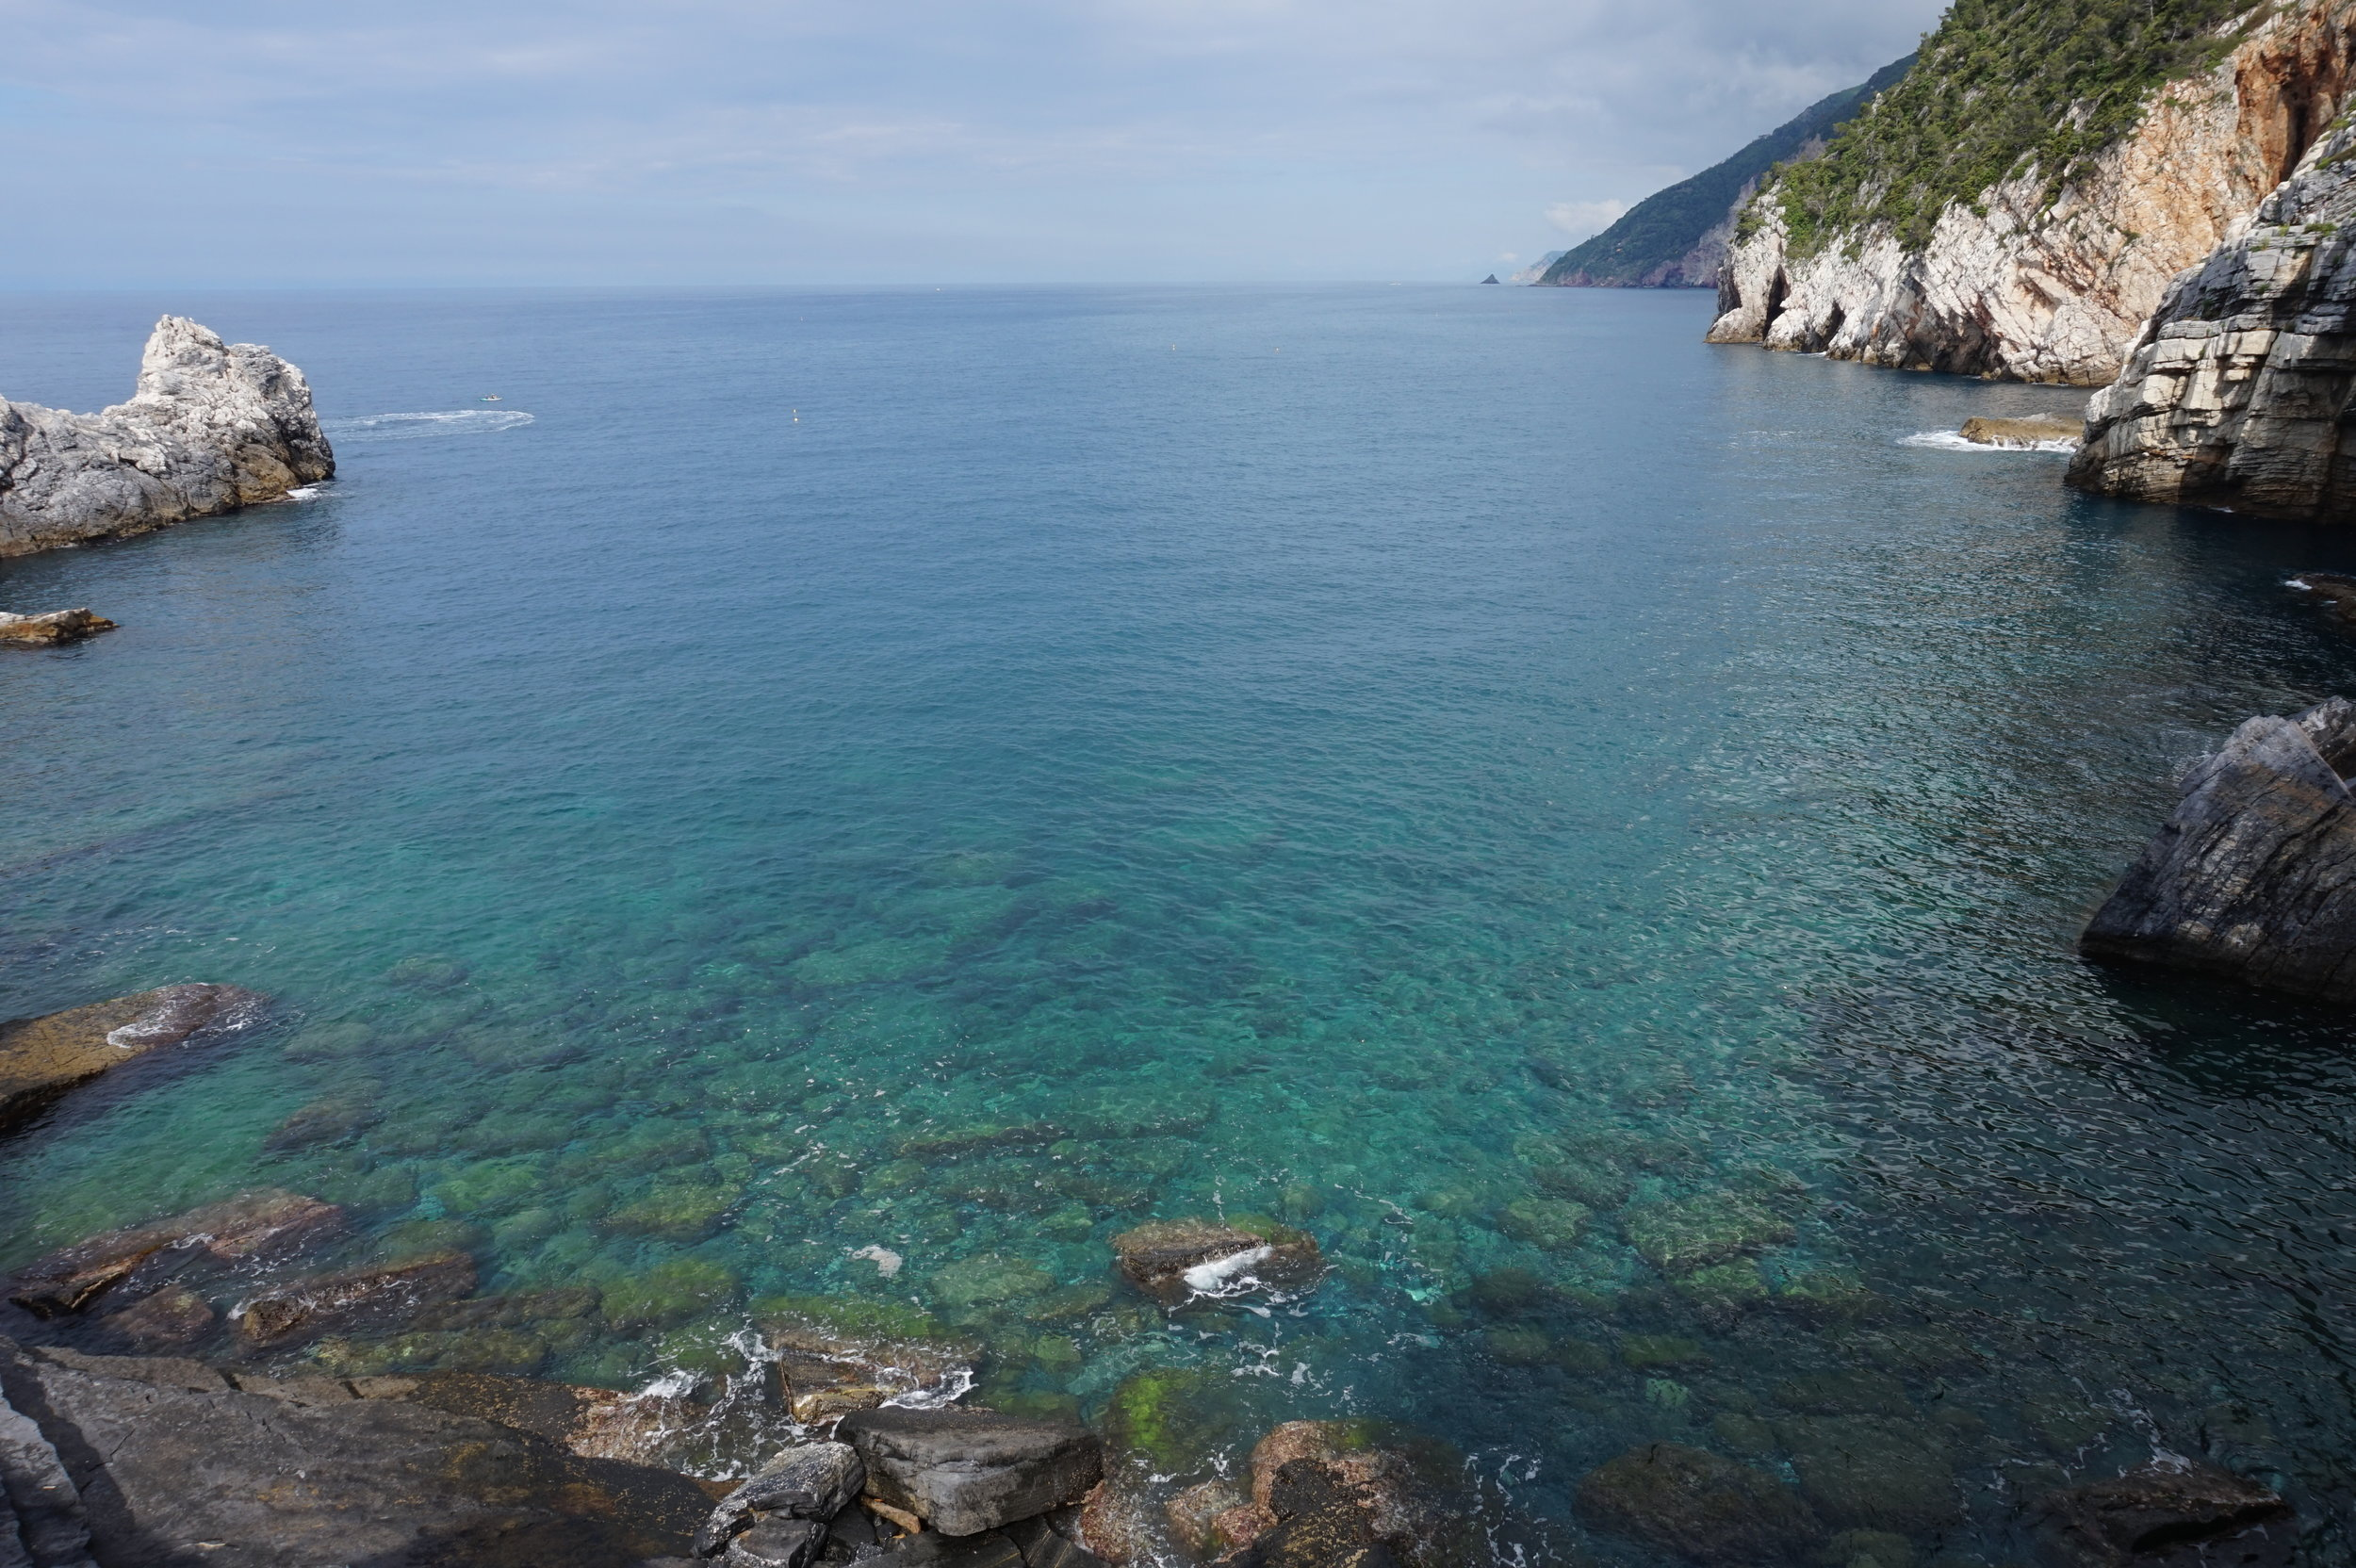 Trekking the Gulf of Poets - EXPLORE TUSCANY